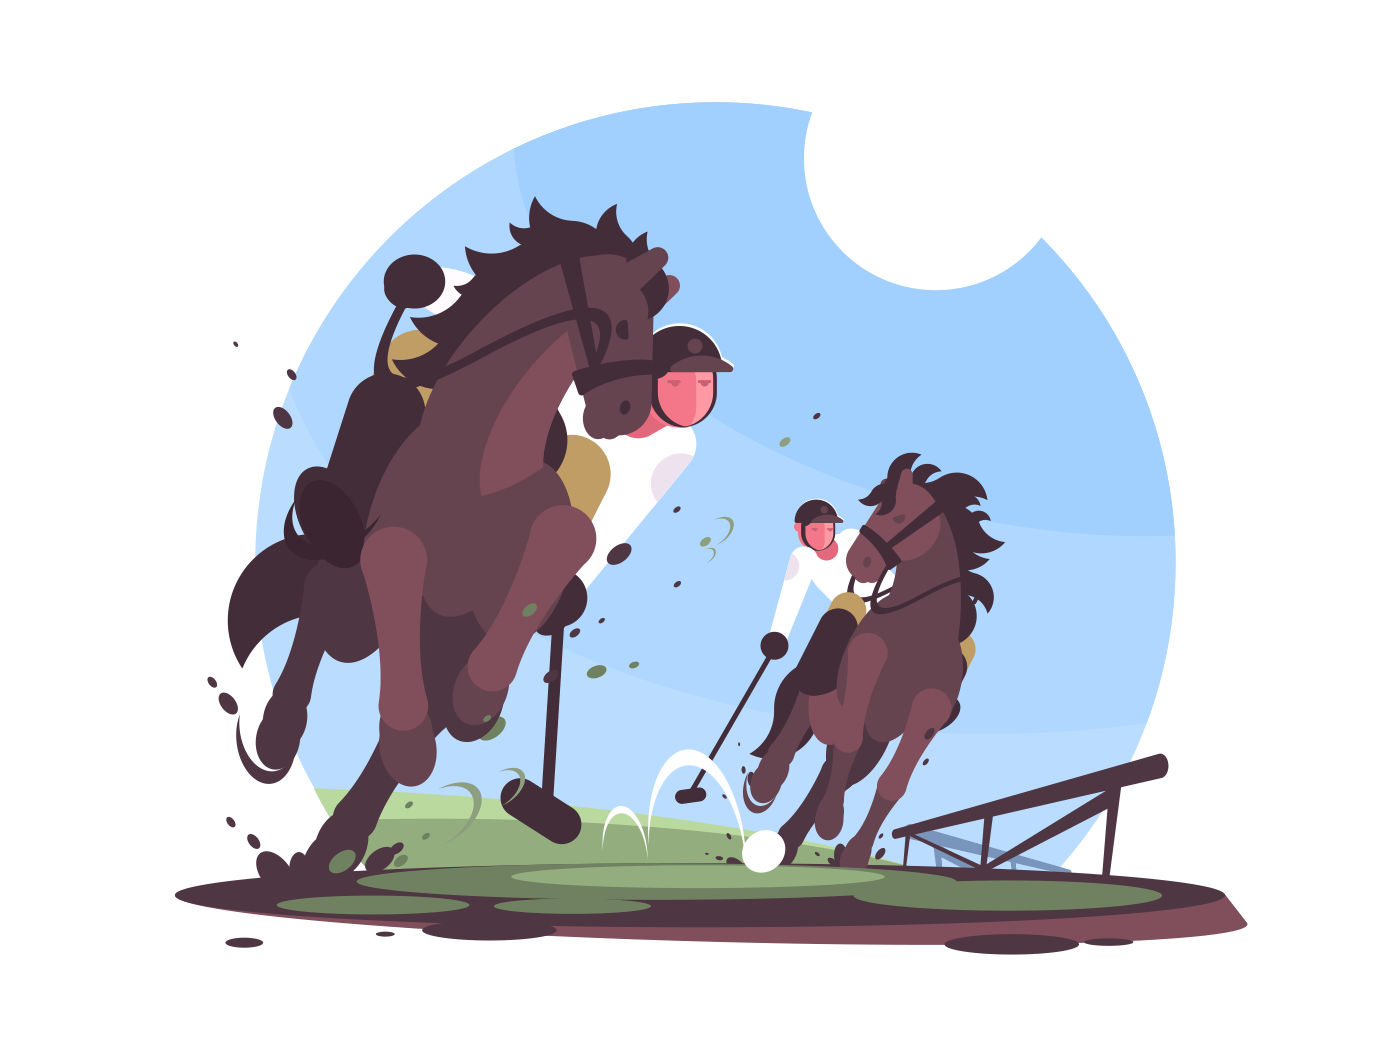 Players playing polo on green field. Rider with stick on horse. Vector illustration